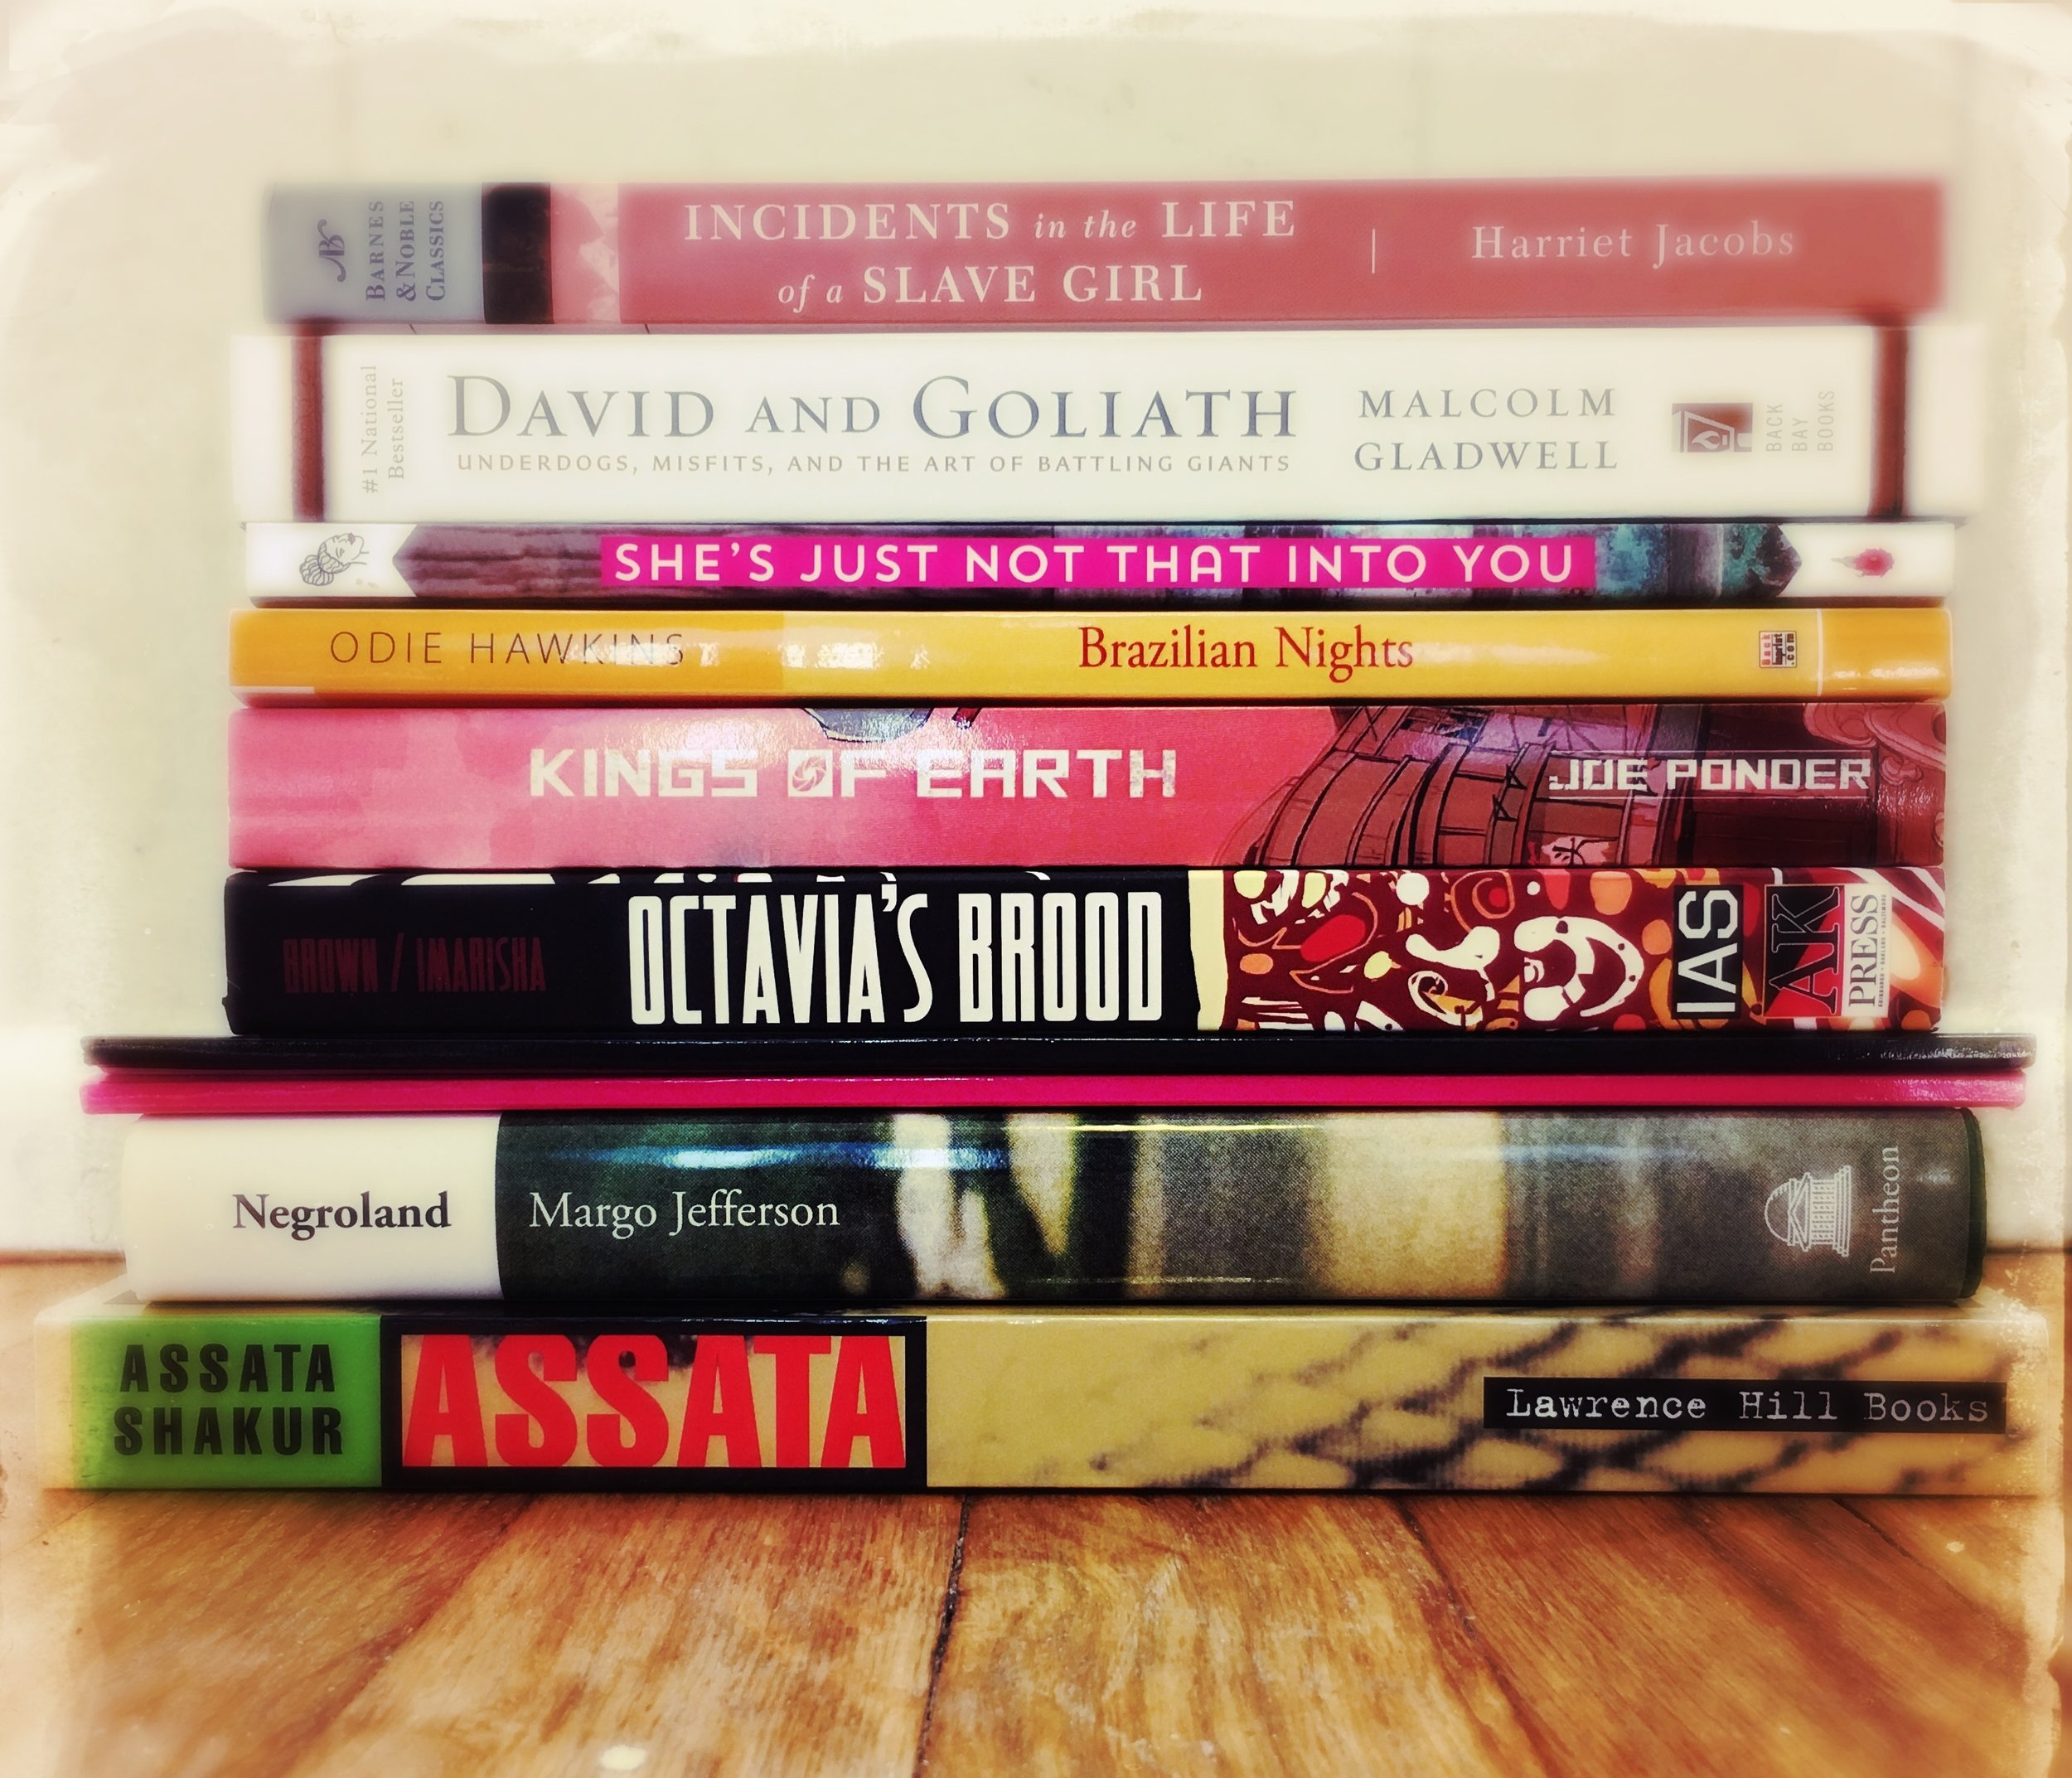 Stack of books by Black authors